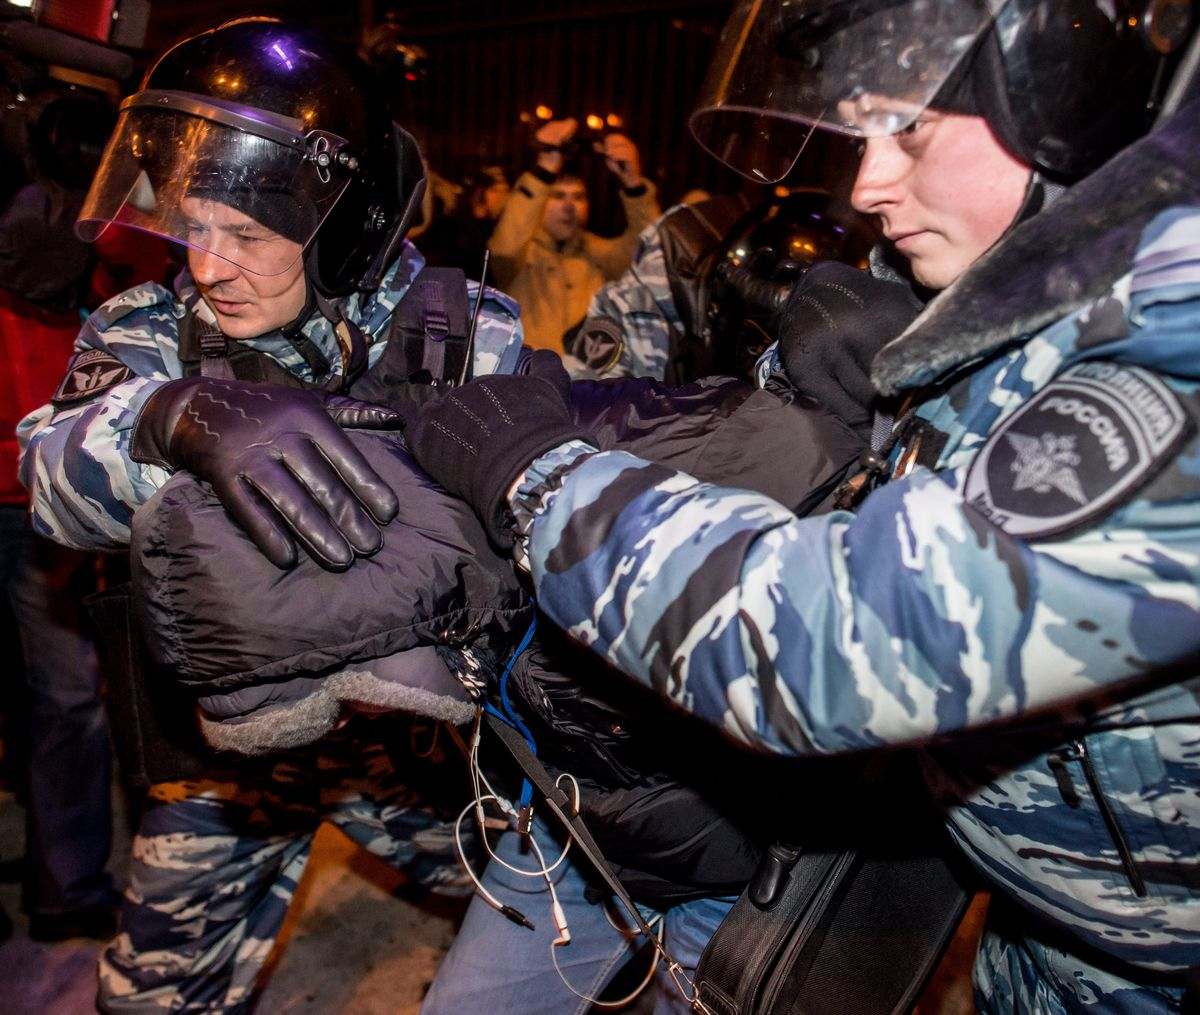 Russian riot police arrest a protester in Moscow (DMITRY SEREBRYAKOV/AFP/Getty)